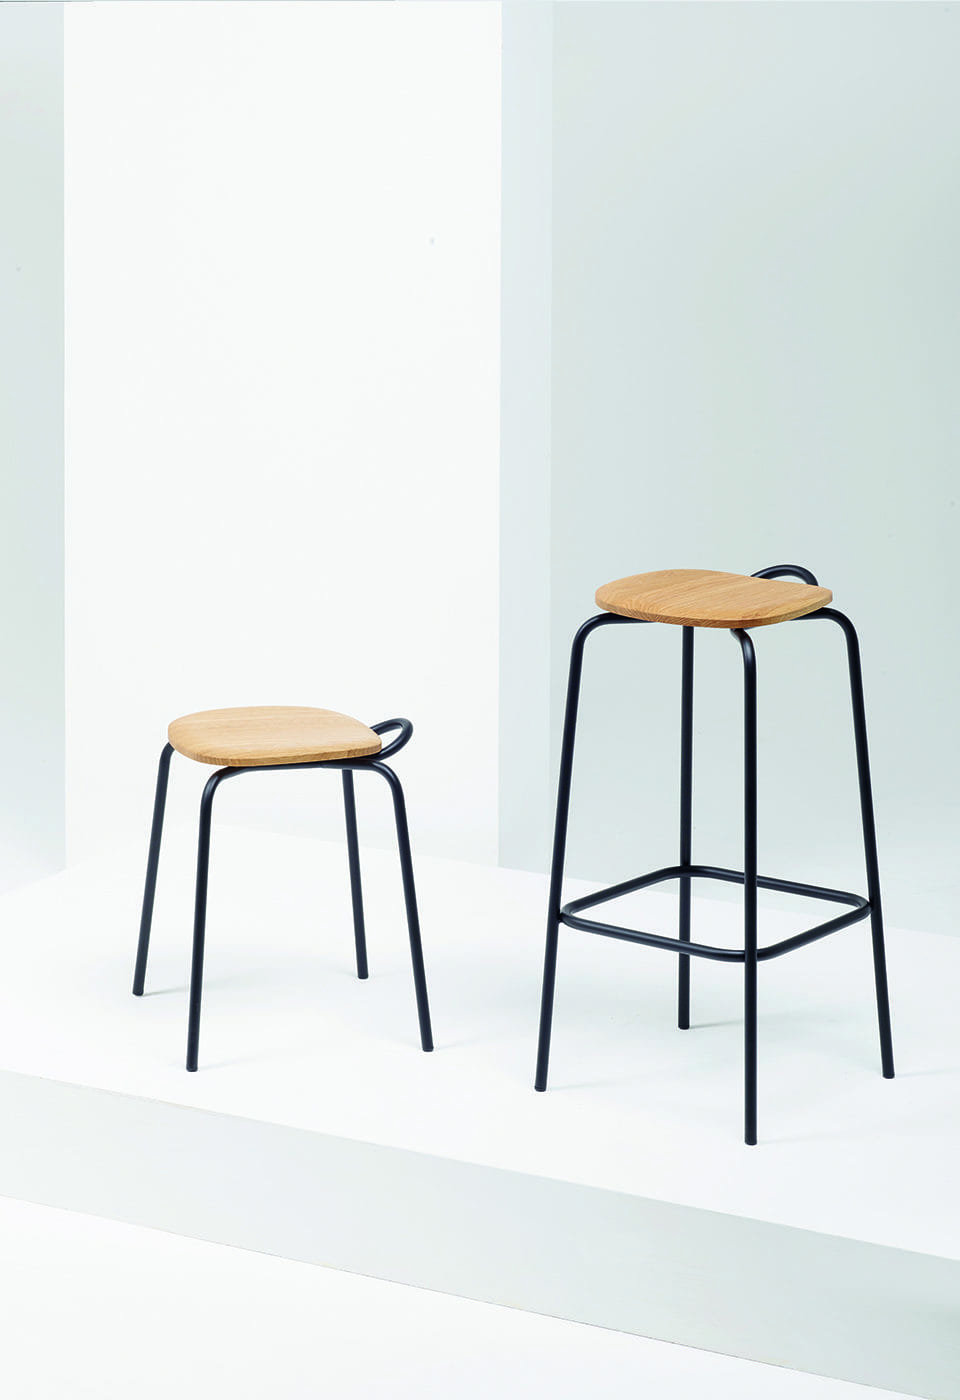 Mc16 Forcina Stool By Leon Ransmeier For Mattiazzi